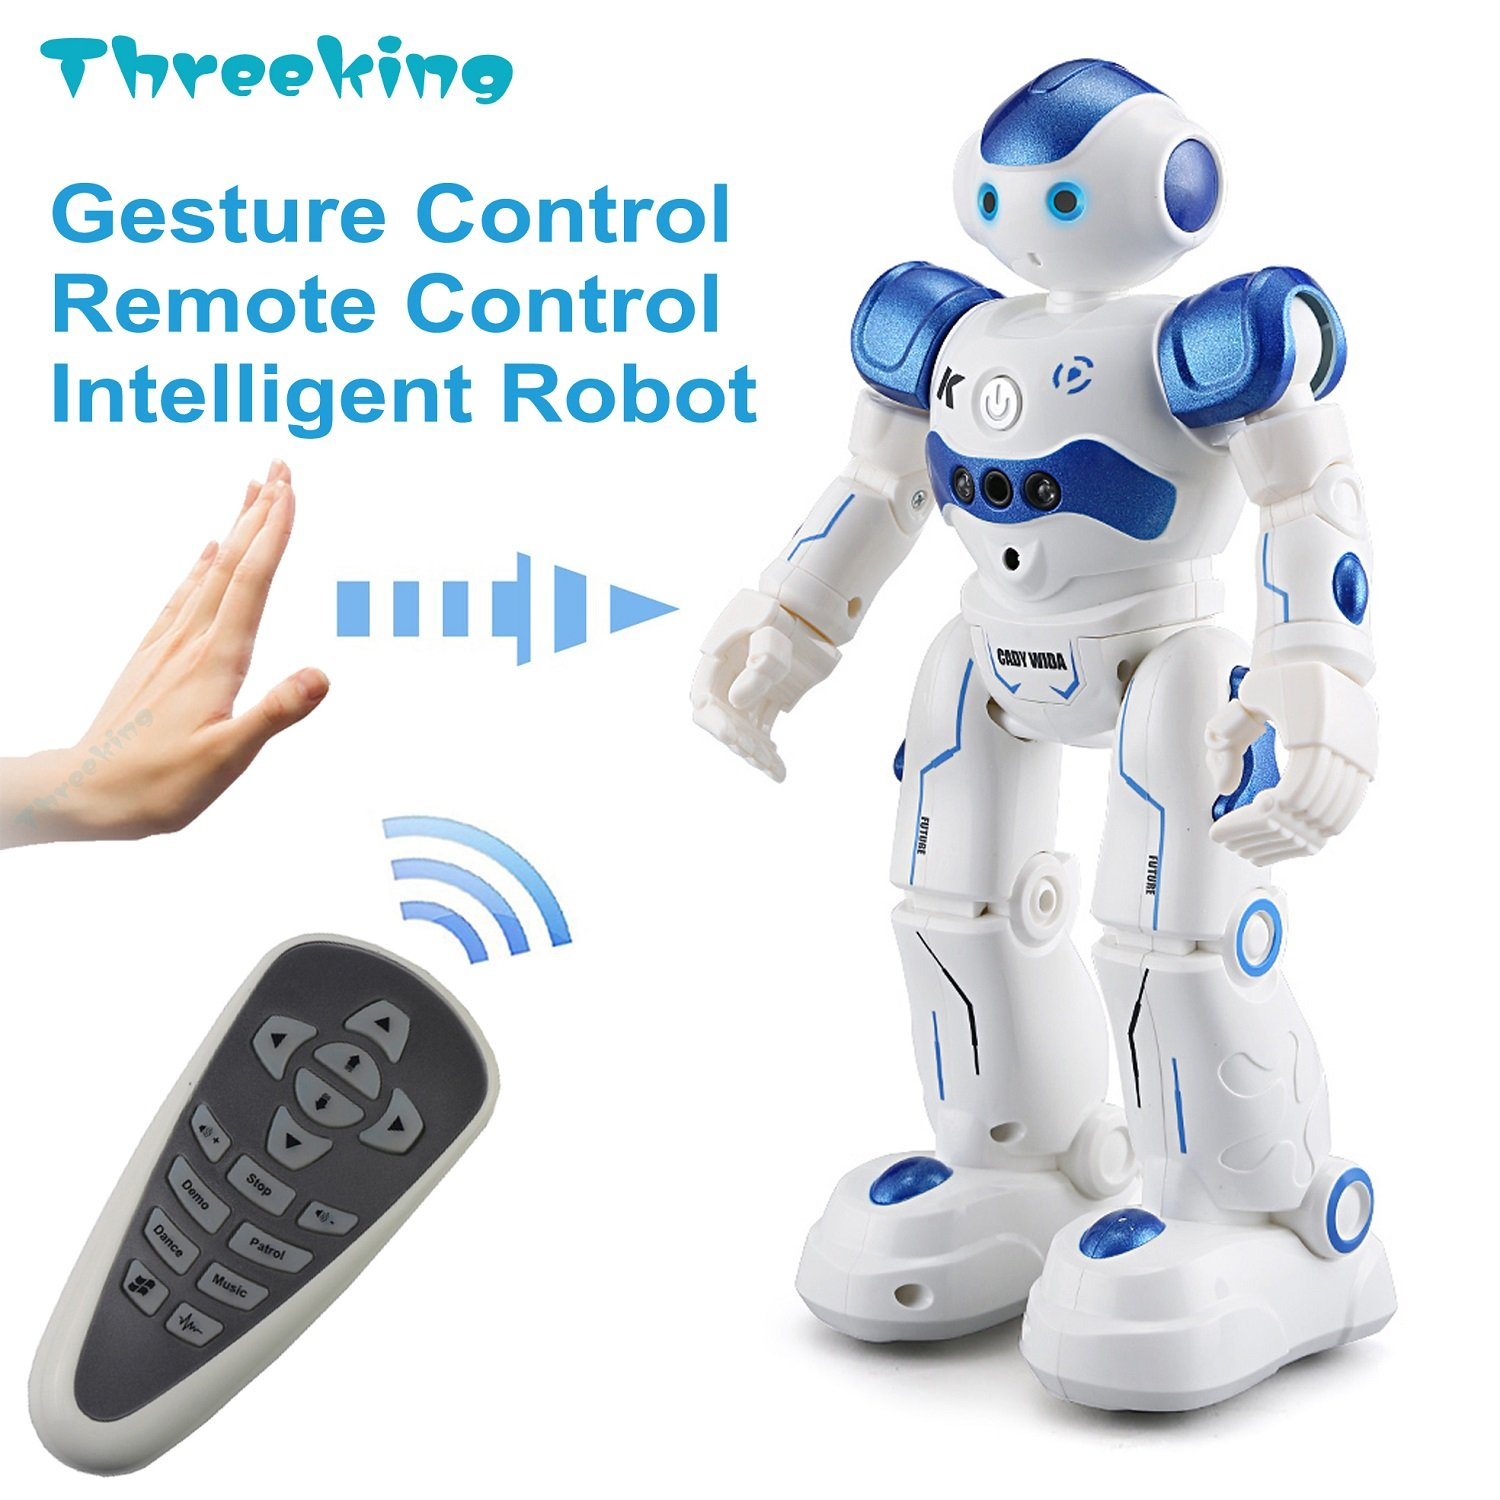 Threeking Smart Robot Toys Gesture Control Remote Control Robot JJRC Robot Gift for Boys Girls Kids Companion Game Fun Learning Music Dance Rechargeable Rc Robot Kit Male Voice by Threeking